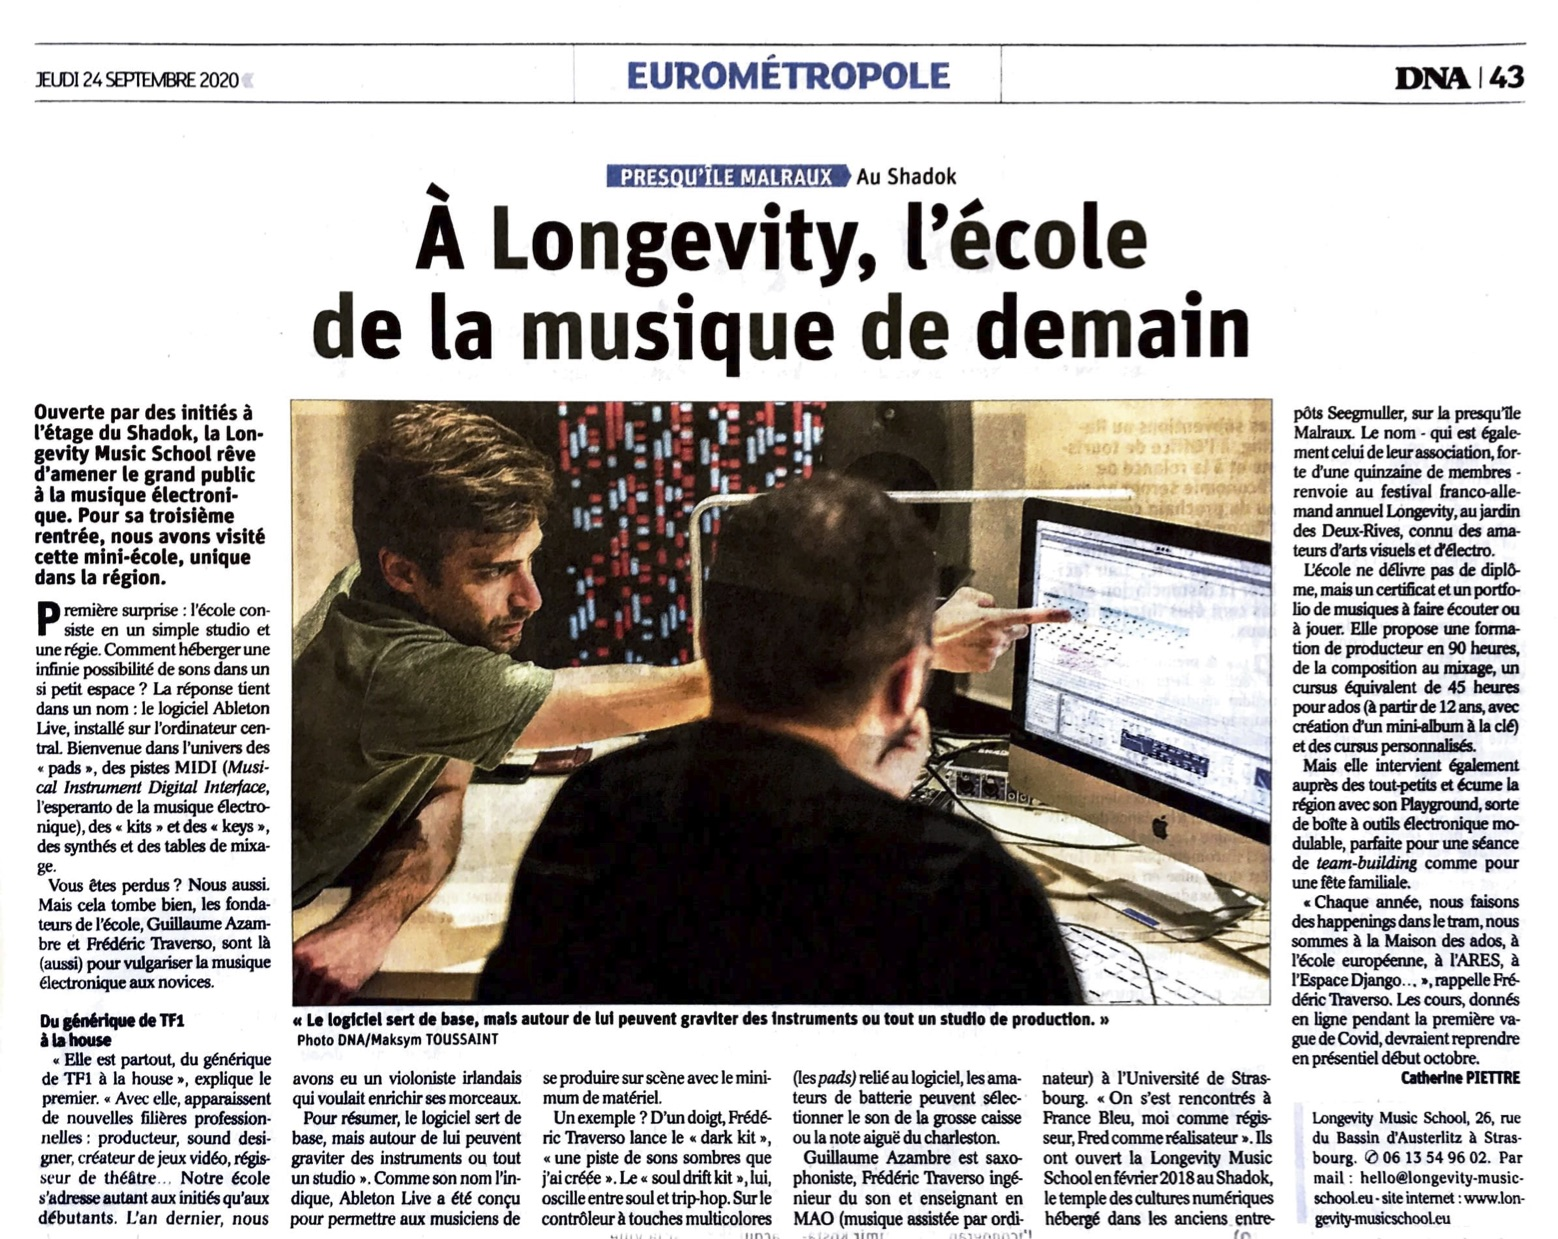 Article DNA 24:09:2020